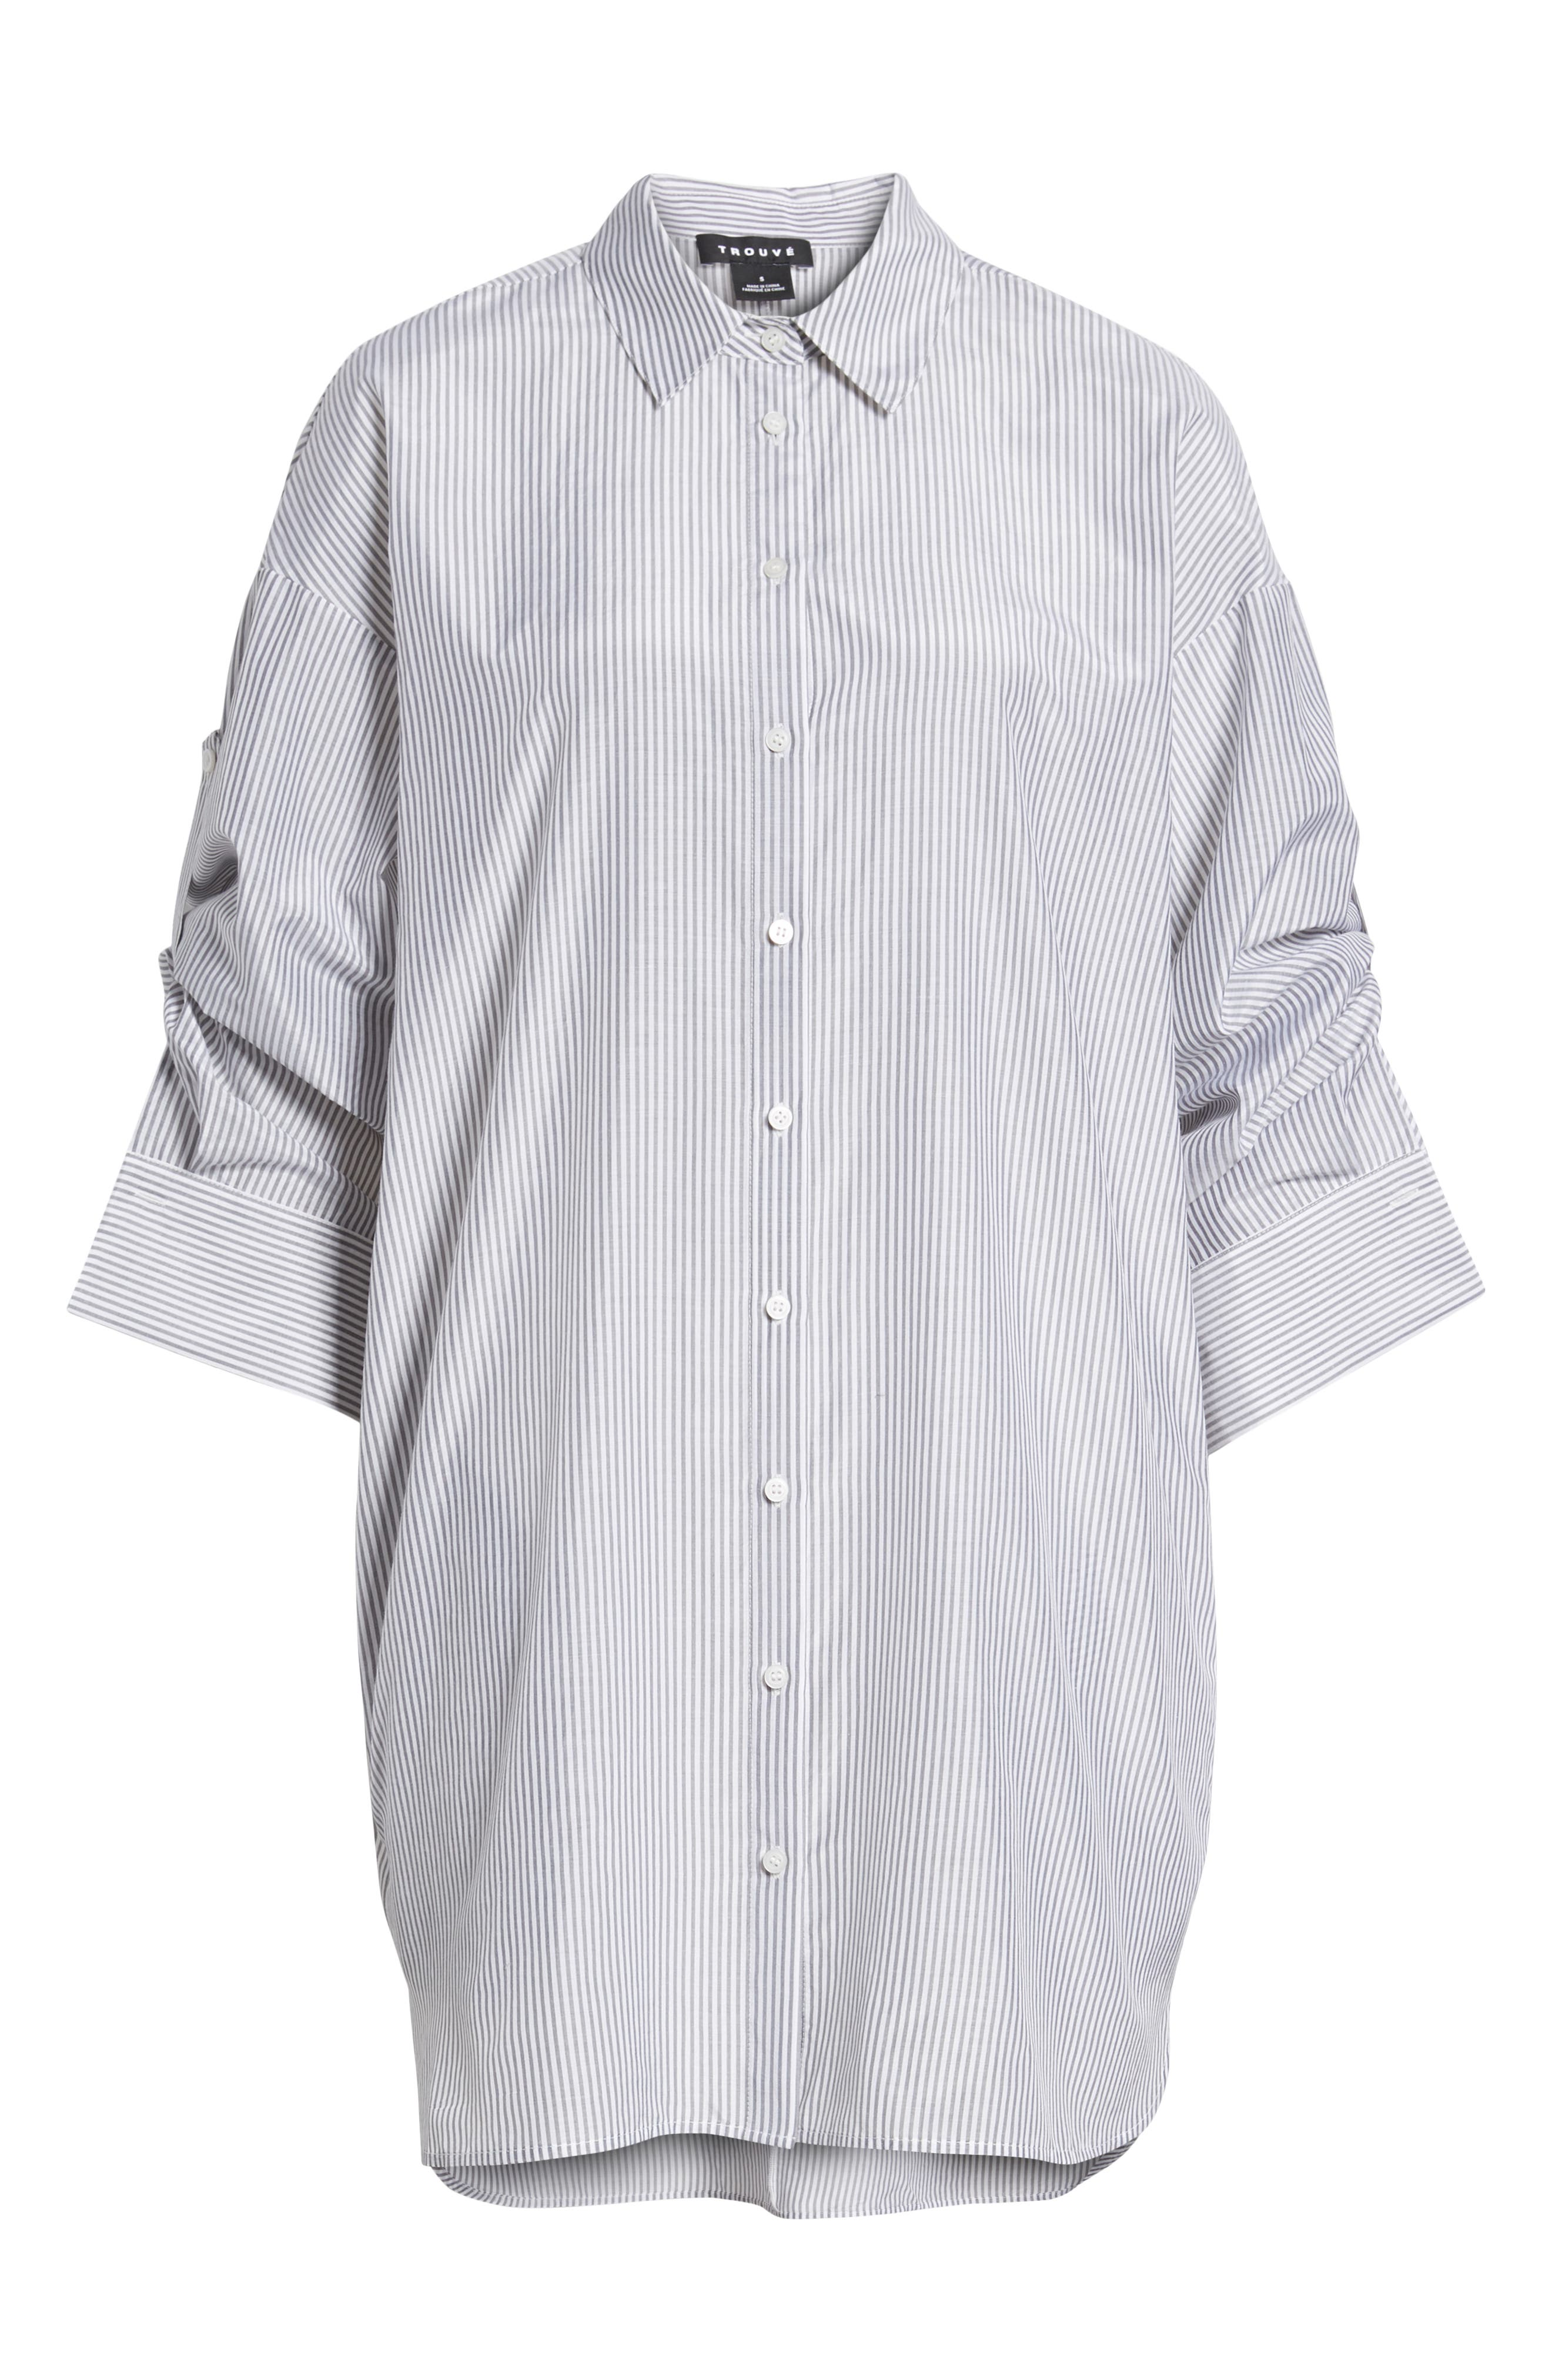 Stripe Cotton & Silk Shirtdress,                             Alternate thumbnail 7, color,                             020